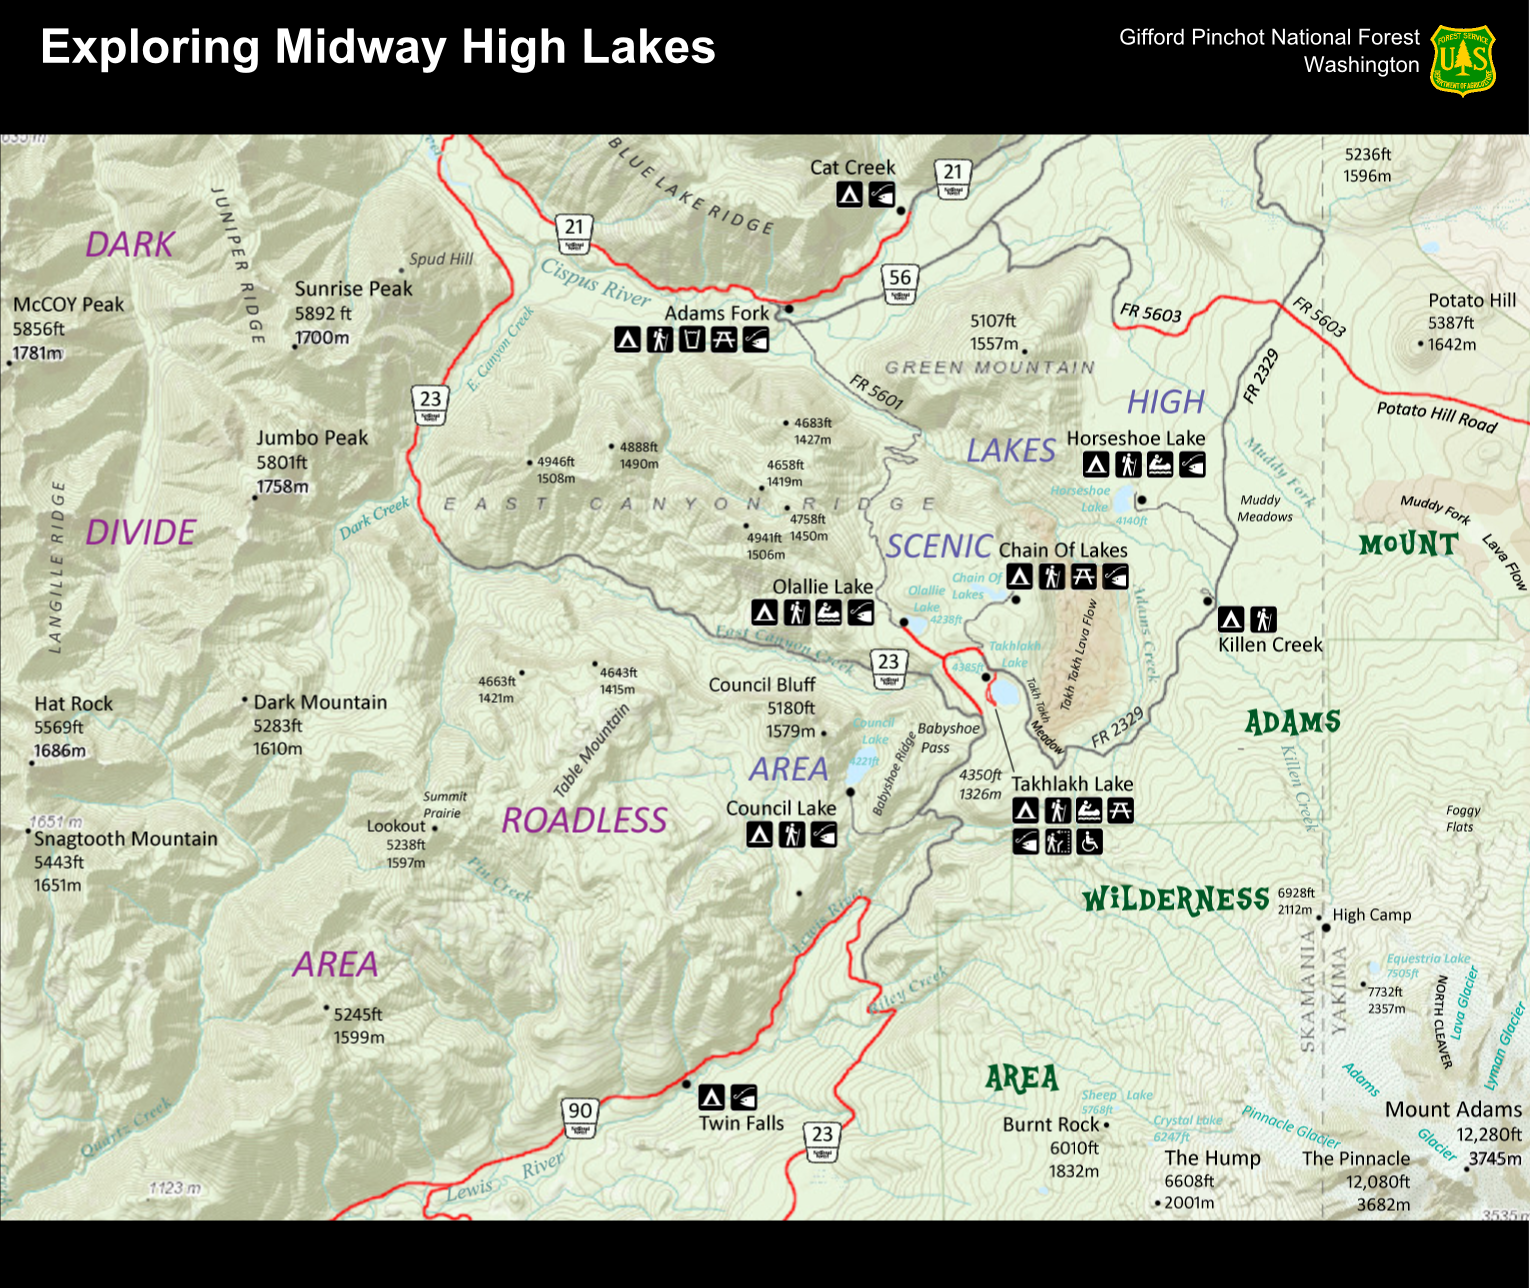 Mt Adams Washington Map.File Mount Adams Midway High Lakes Area Visitor Map Png Wikimedia